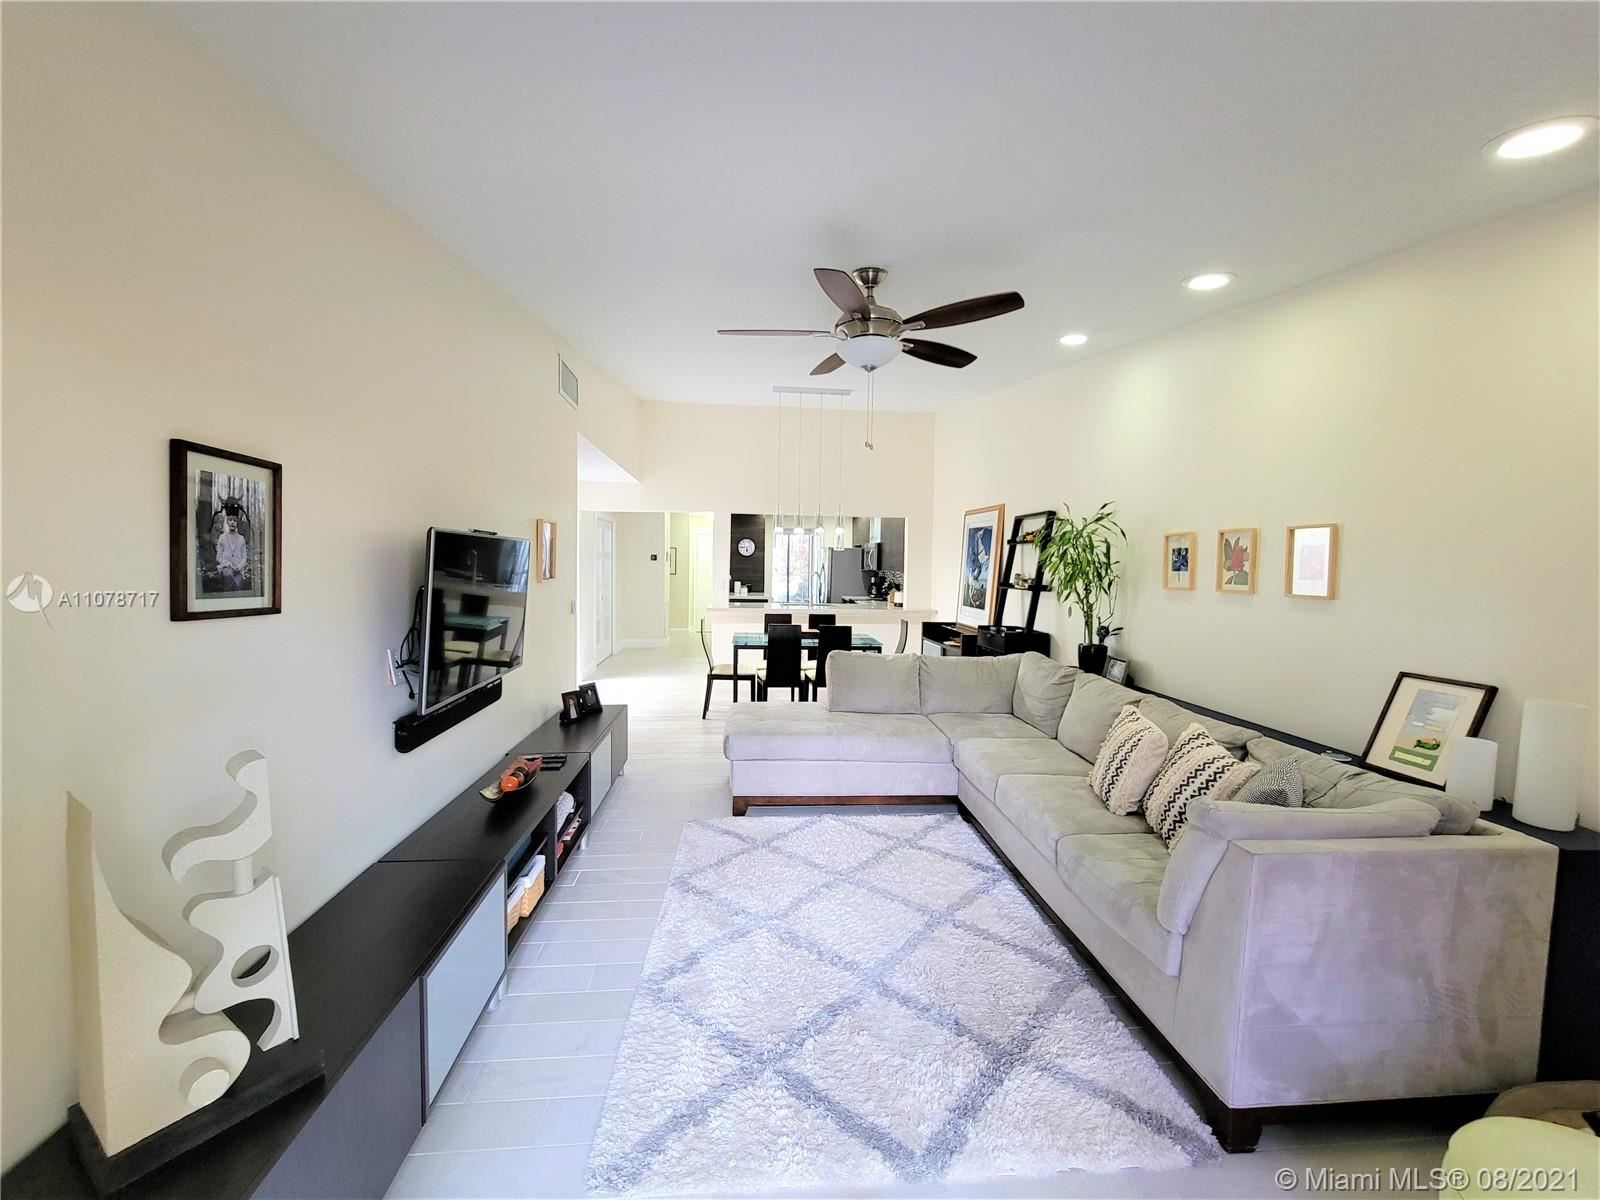 Photo of 819 NW 79th Ter #819, Plantation, FL 33324 (MLS # A11078717)